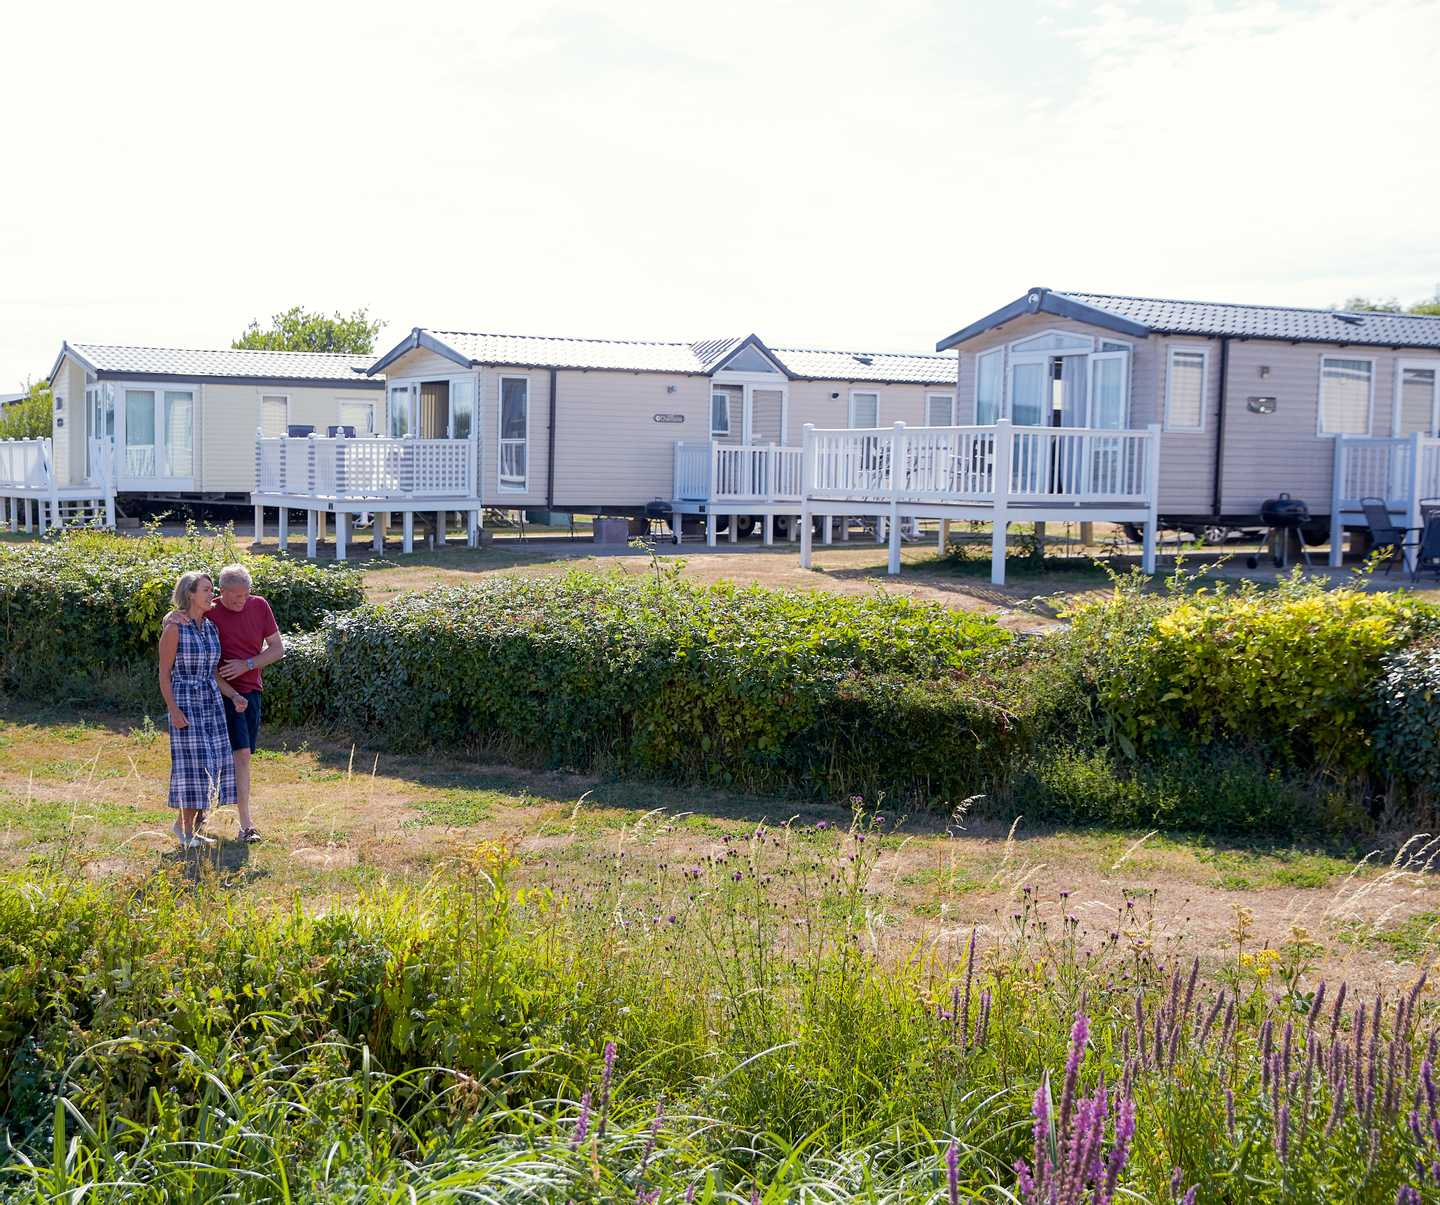 A couple walking through Littlesea Holiday Park